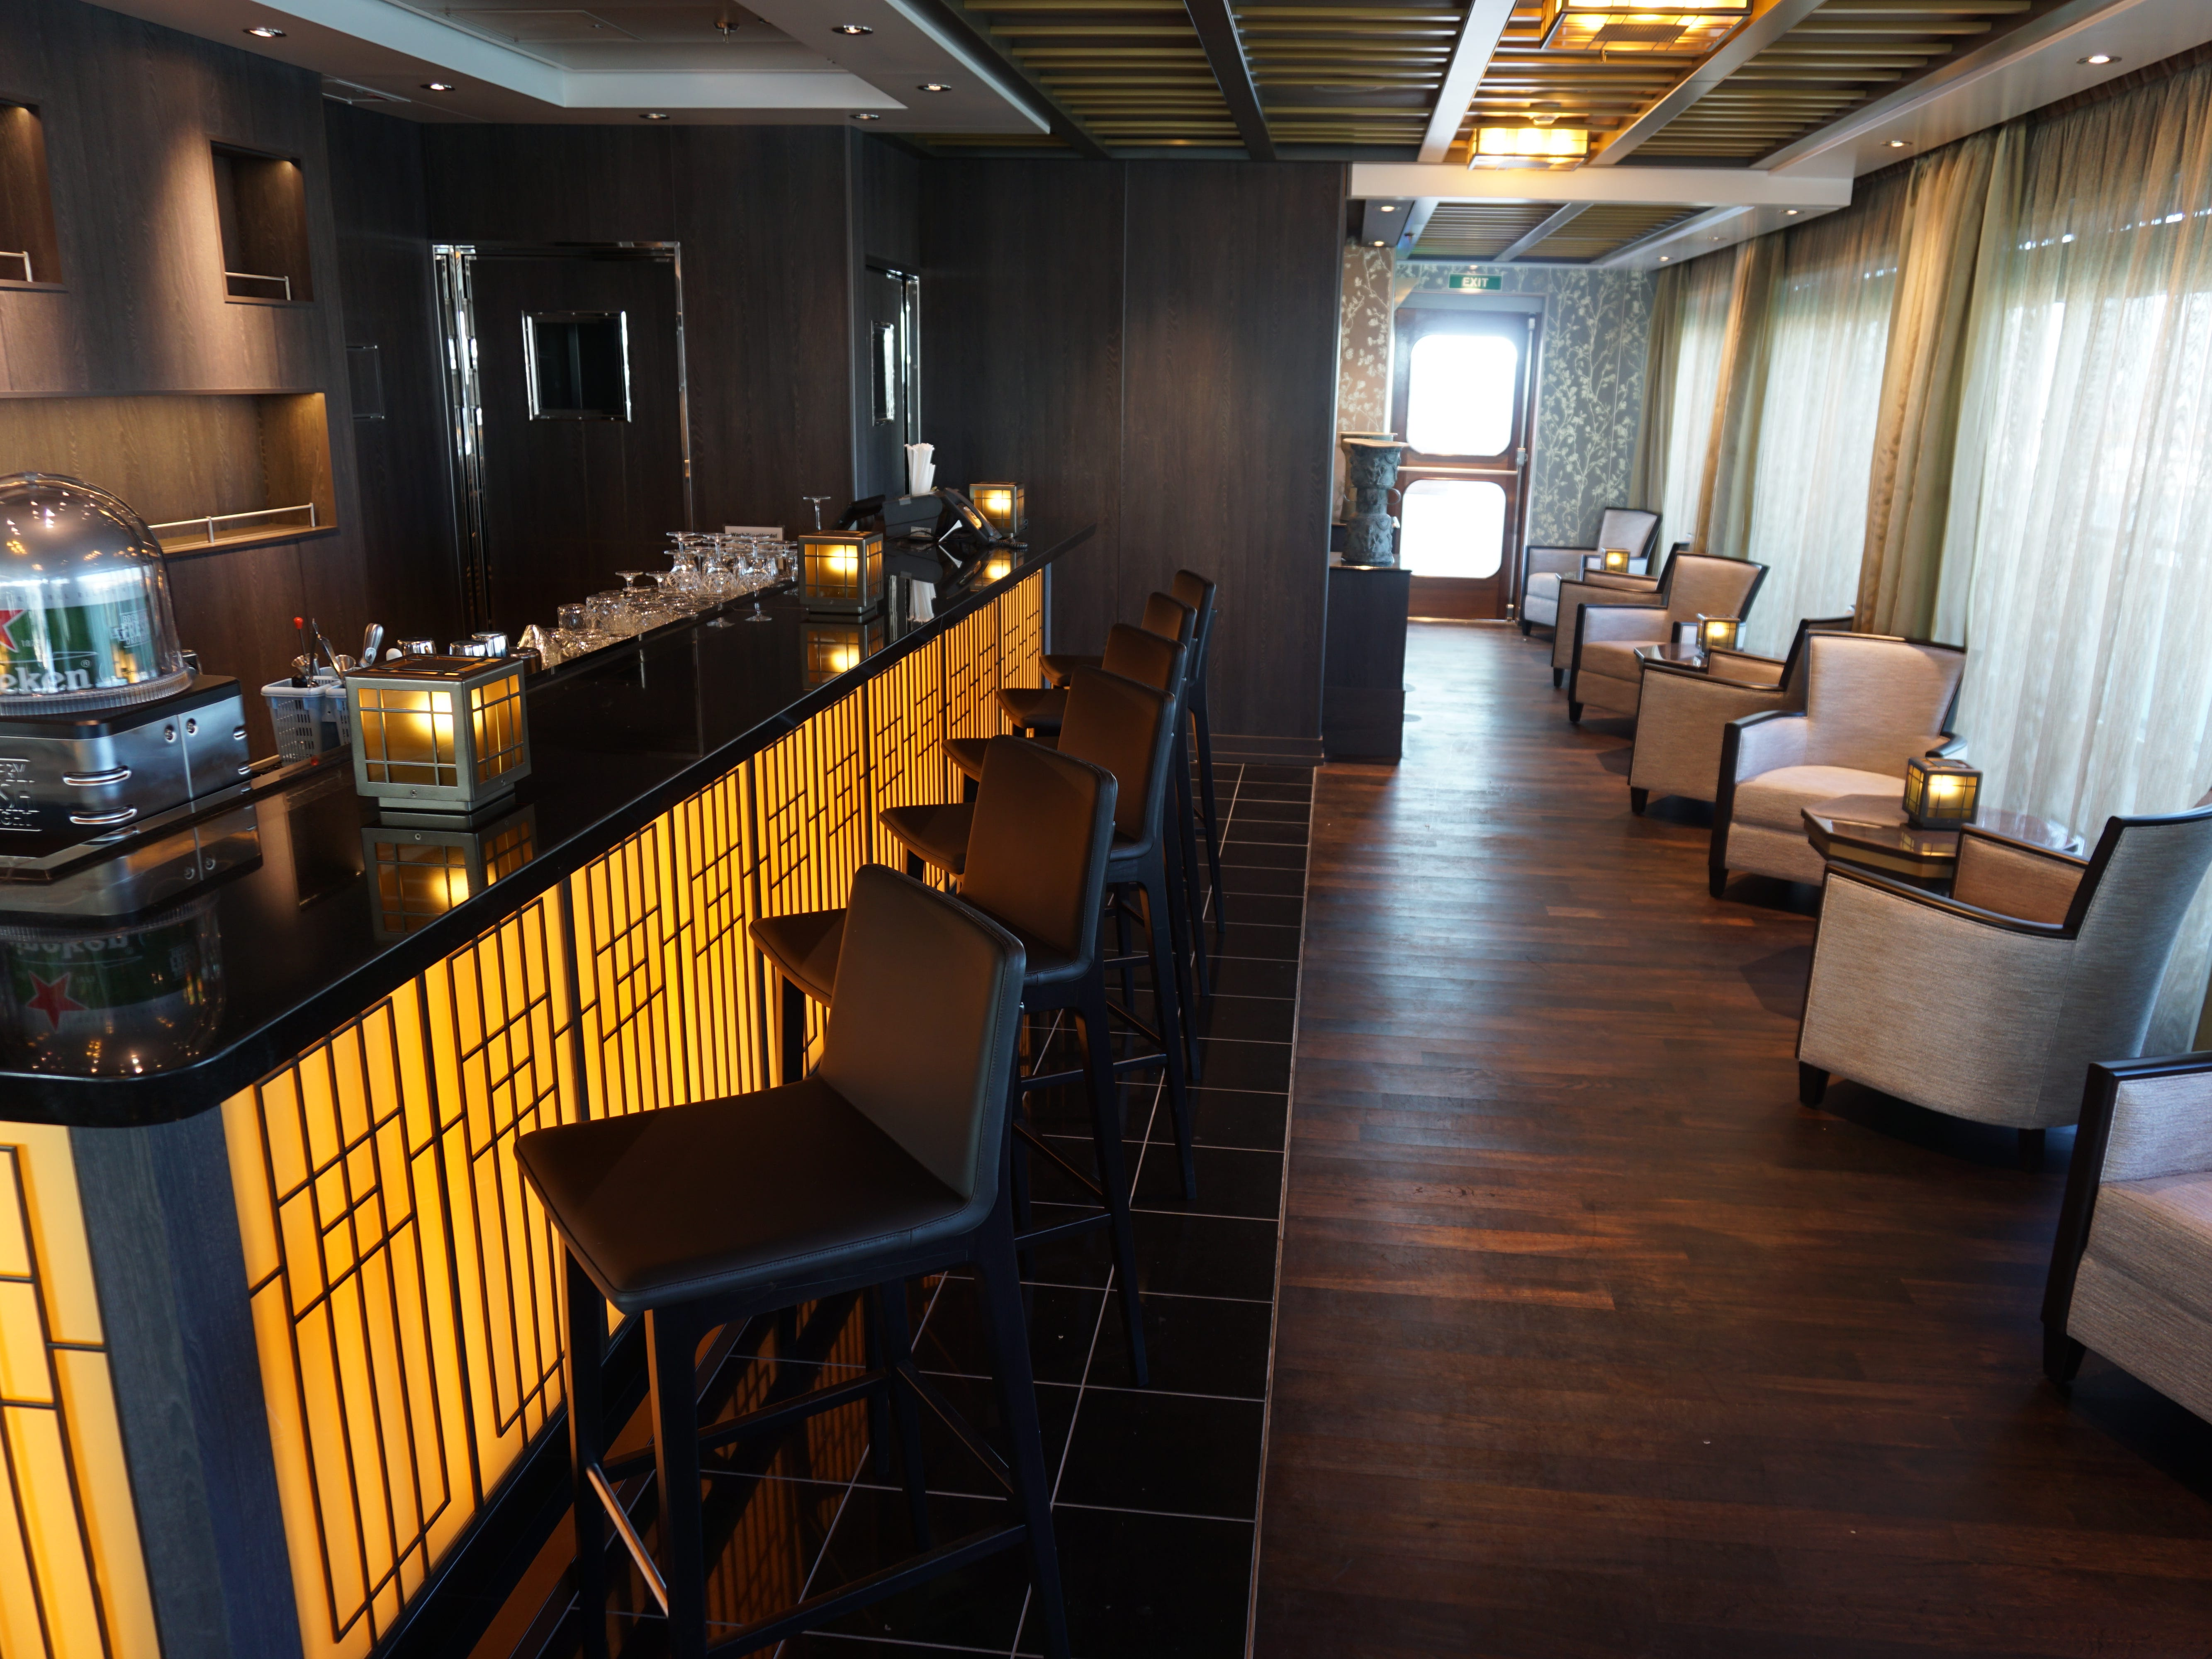 On the starboard side of Tamarind, the bar offers up a selection of beers and cocktails with an Asian flair.